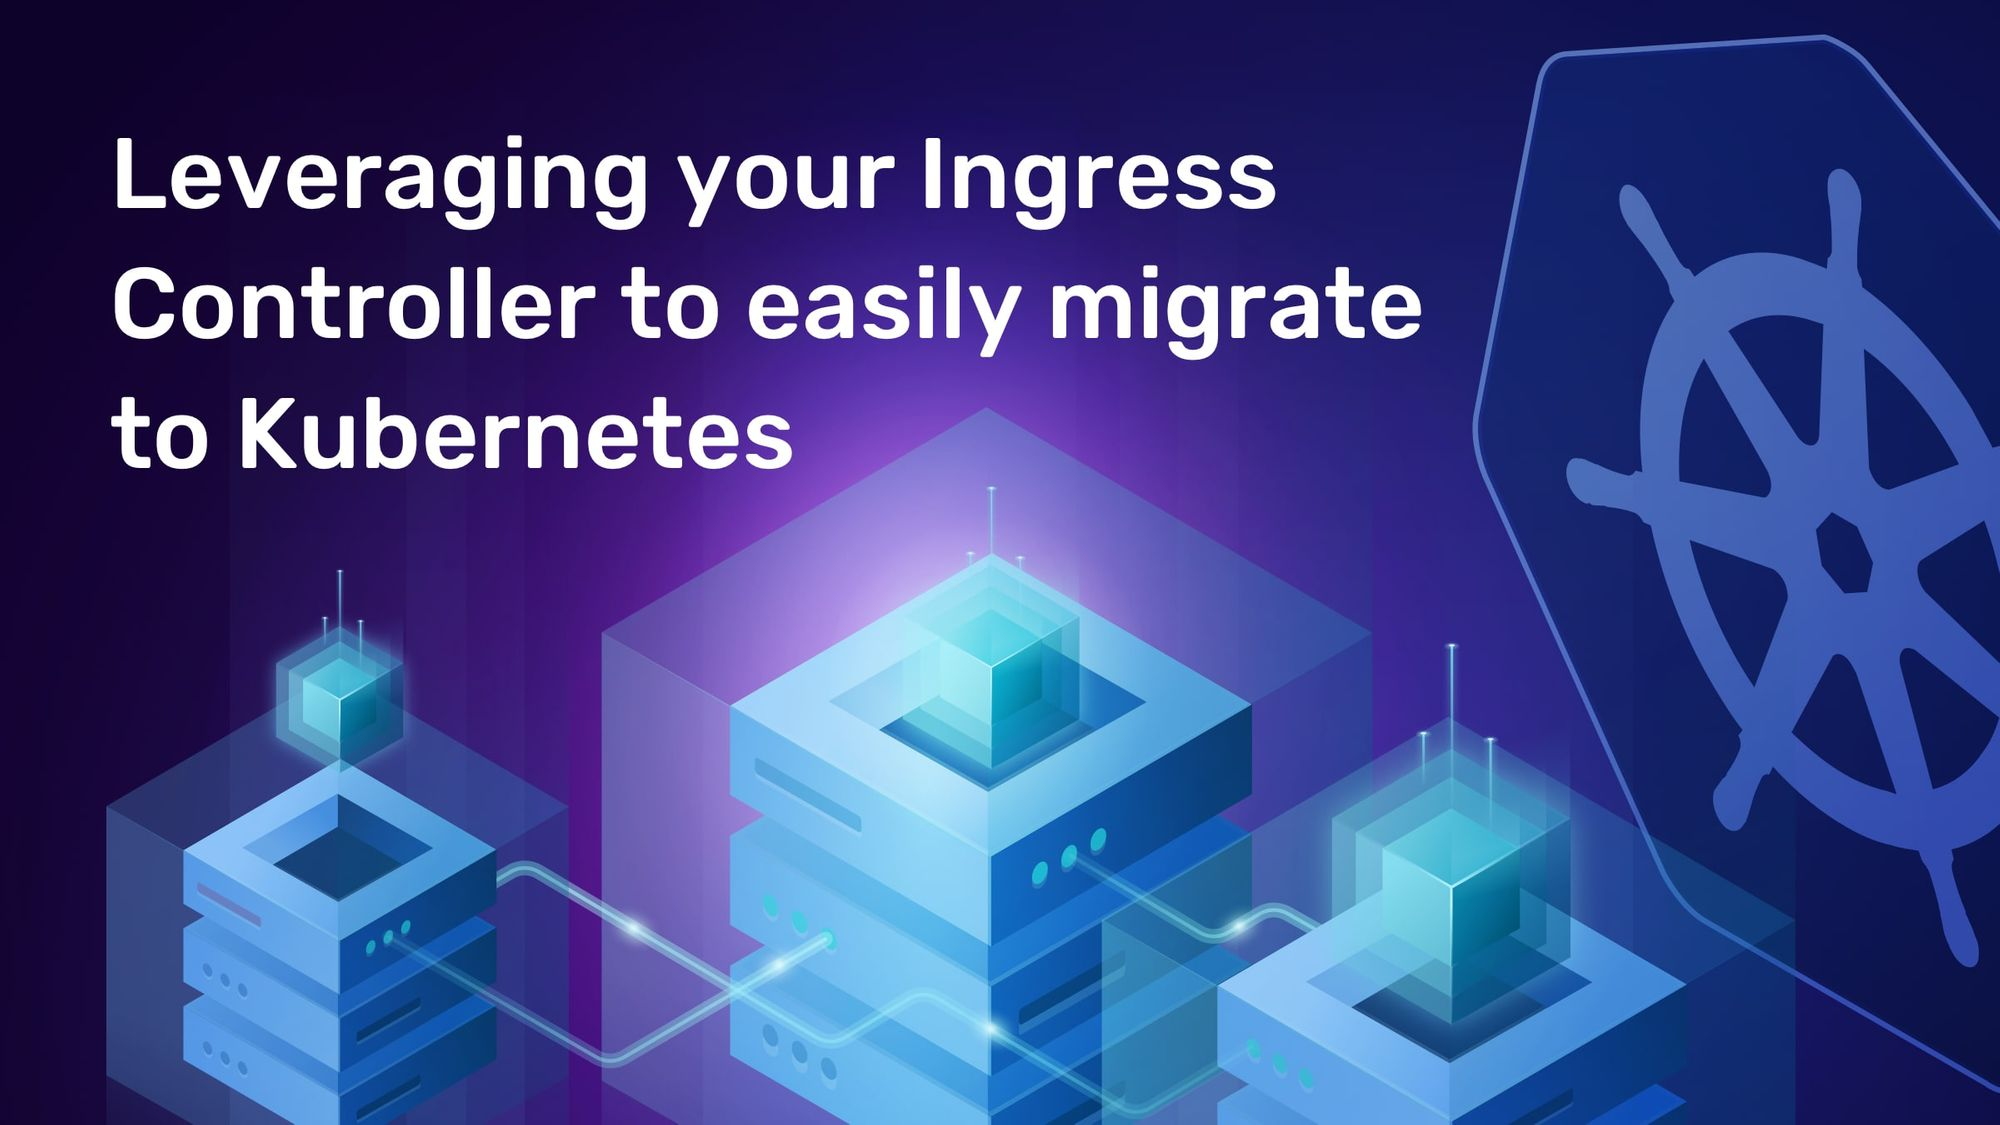 Leveraging your Ingress Controller to easily migrate to Kubernetes